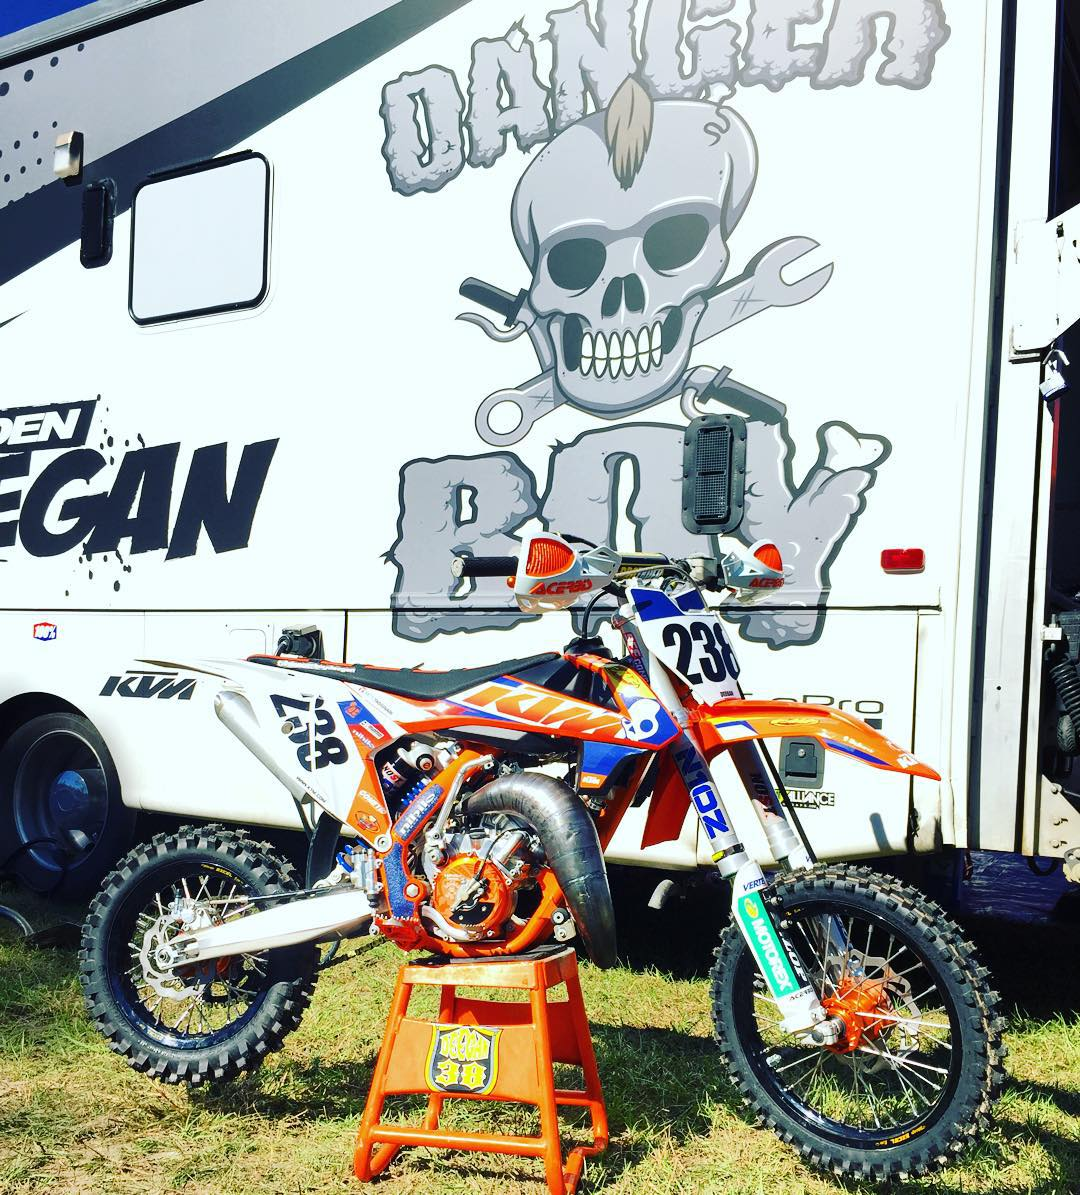 Dang I wish I had this stuff when I was a kid haha. @dangerboydeegan mod #KTM is on point. @orangebrigade #dangerboy #miniolympics #fastmotorcycles #fastbikes #bikes #motorcycles